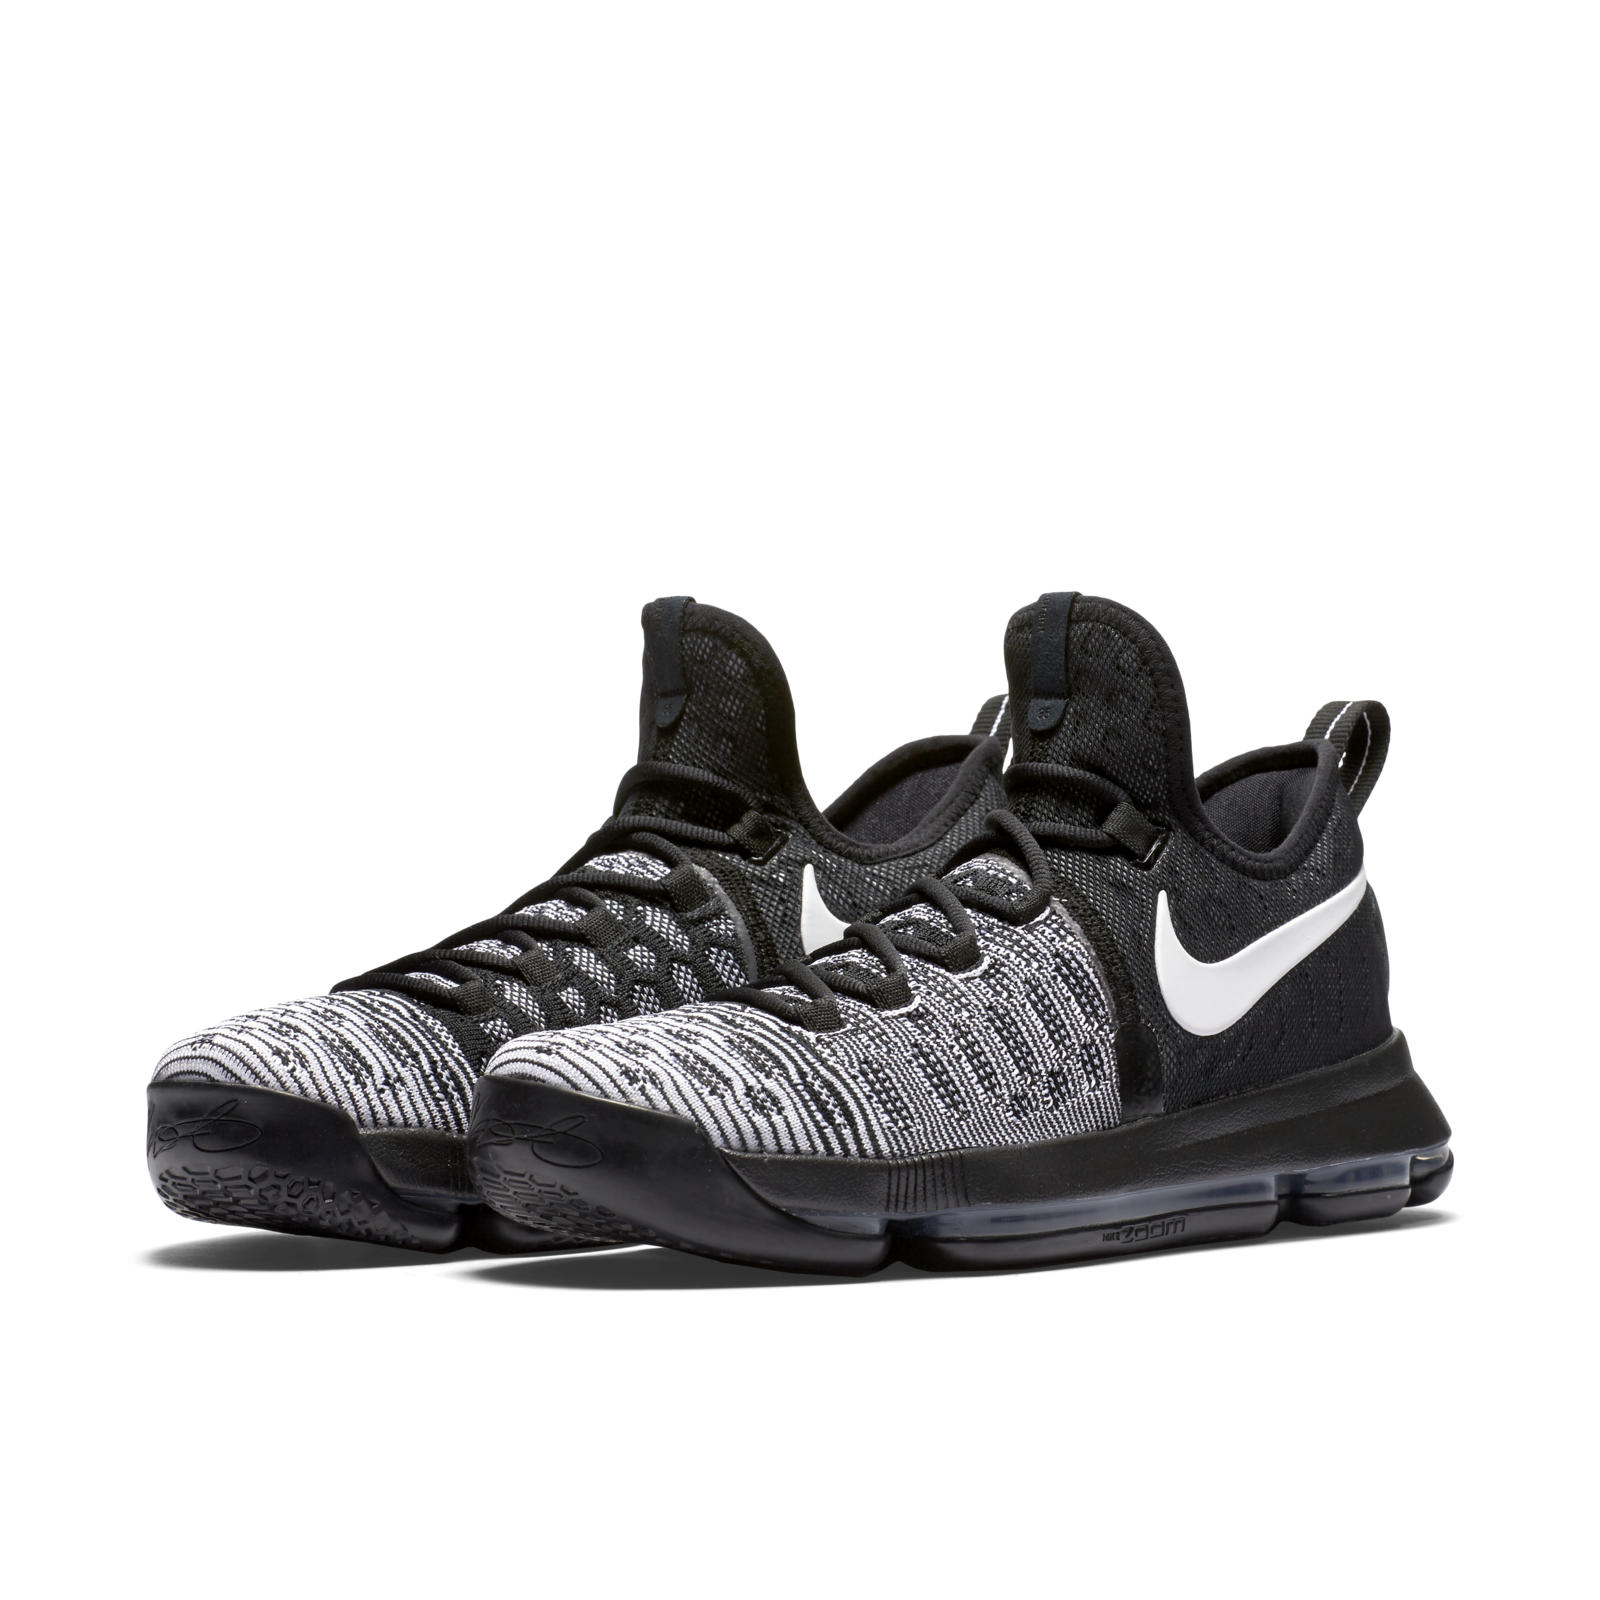 reputable site cdfd2 d8b30 Kevin Durant s Game-Changing KD9 Shoe - Nike News